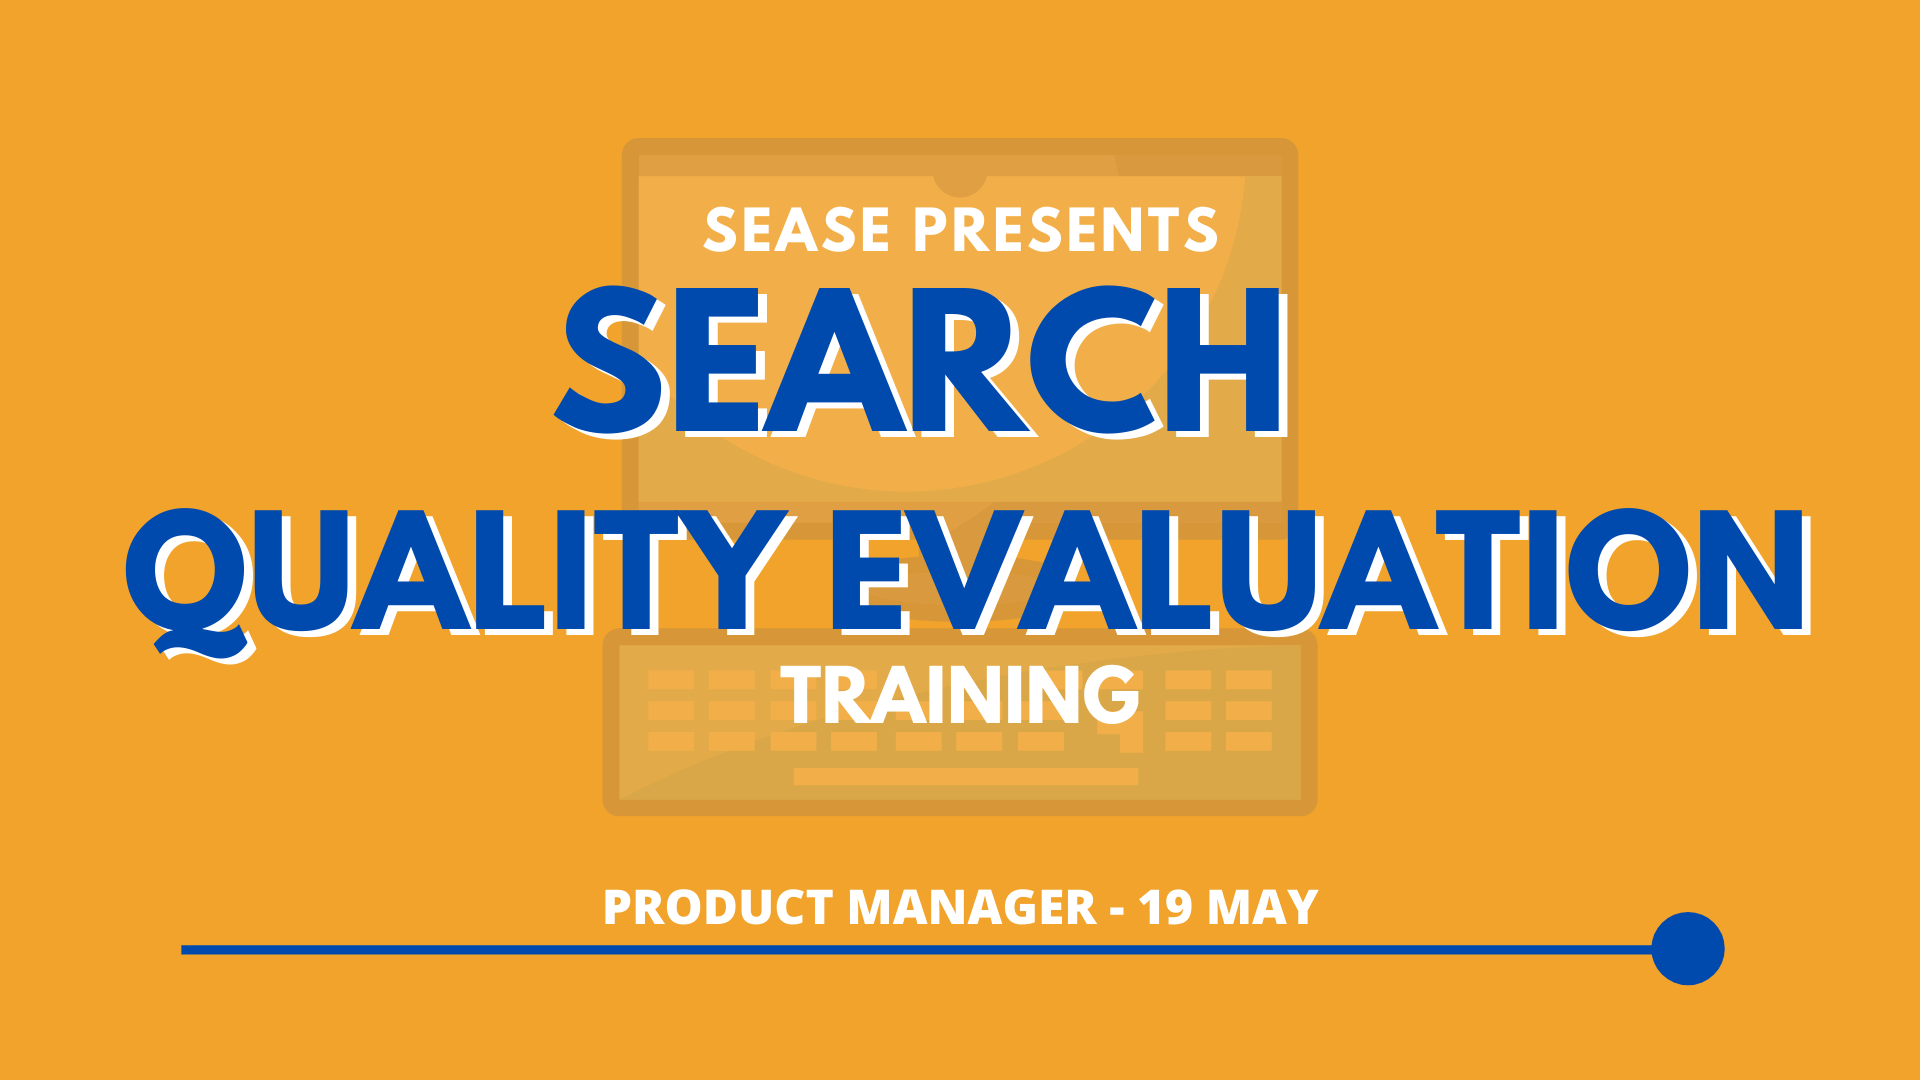 search quality evaluation training may